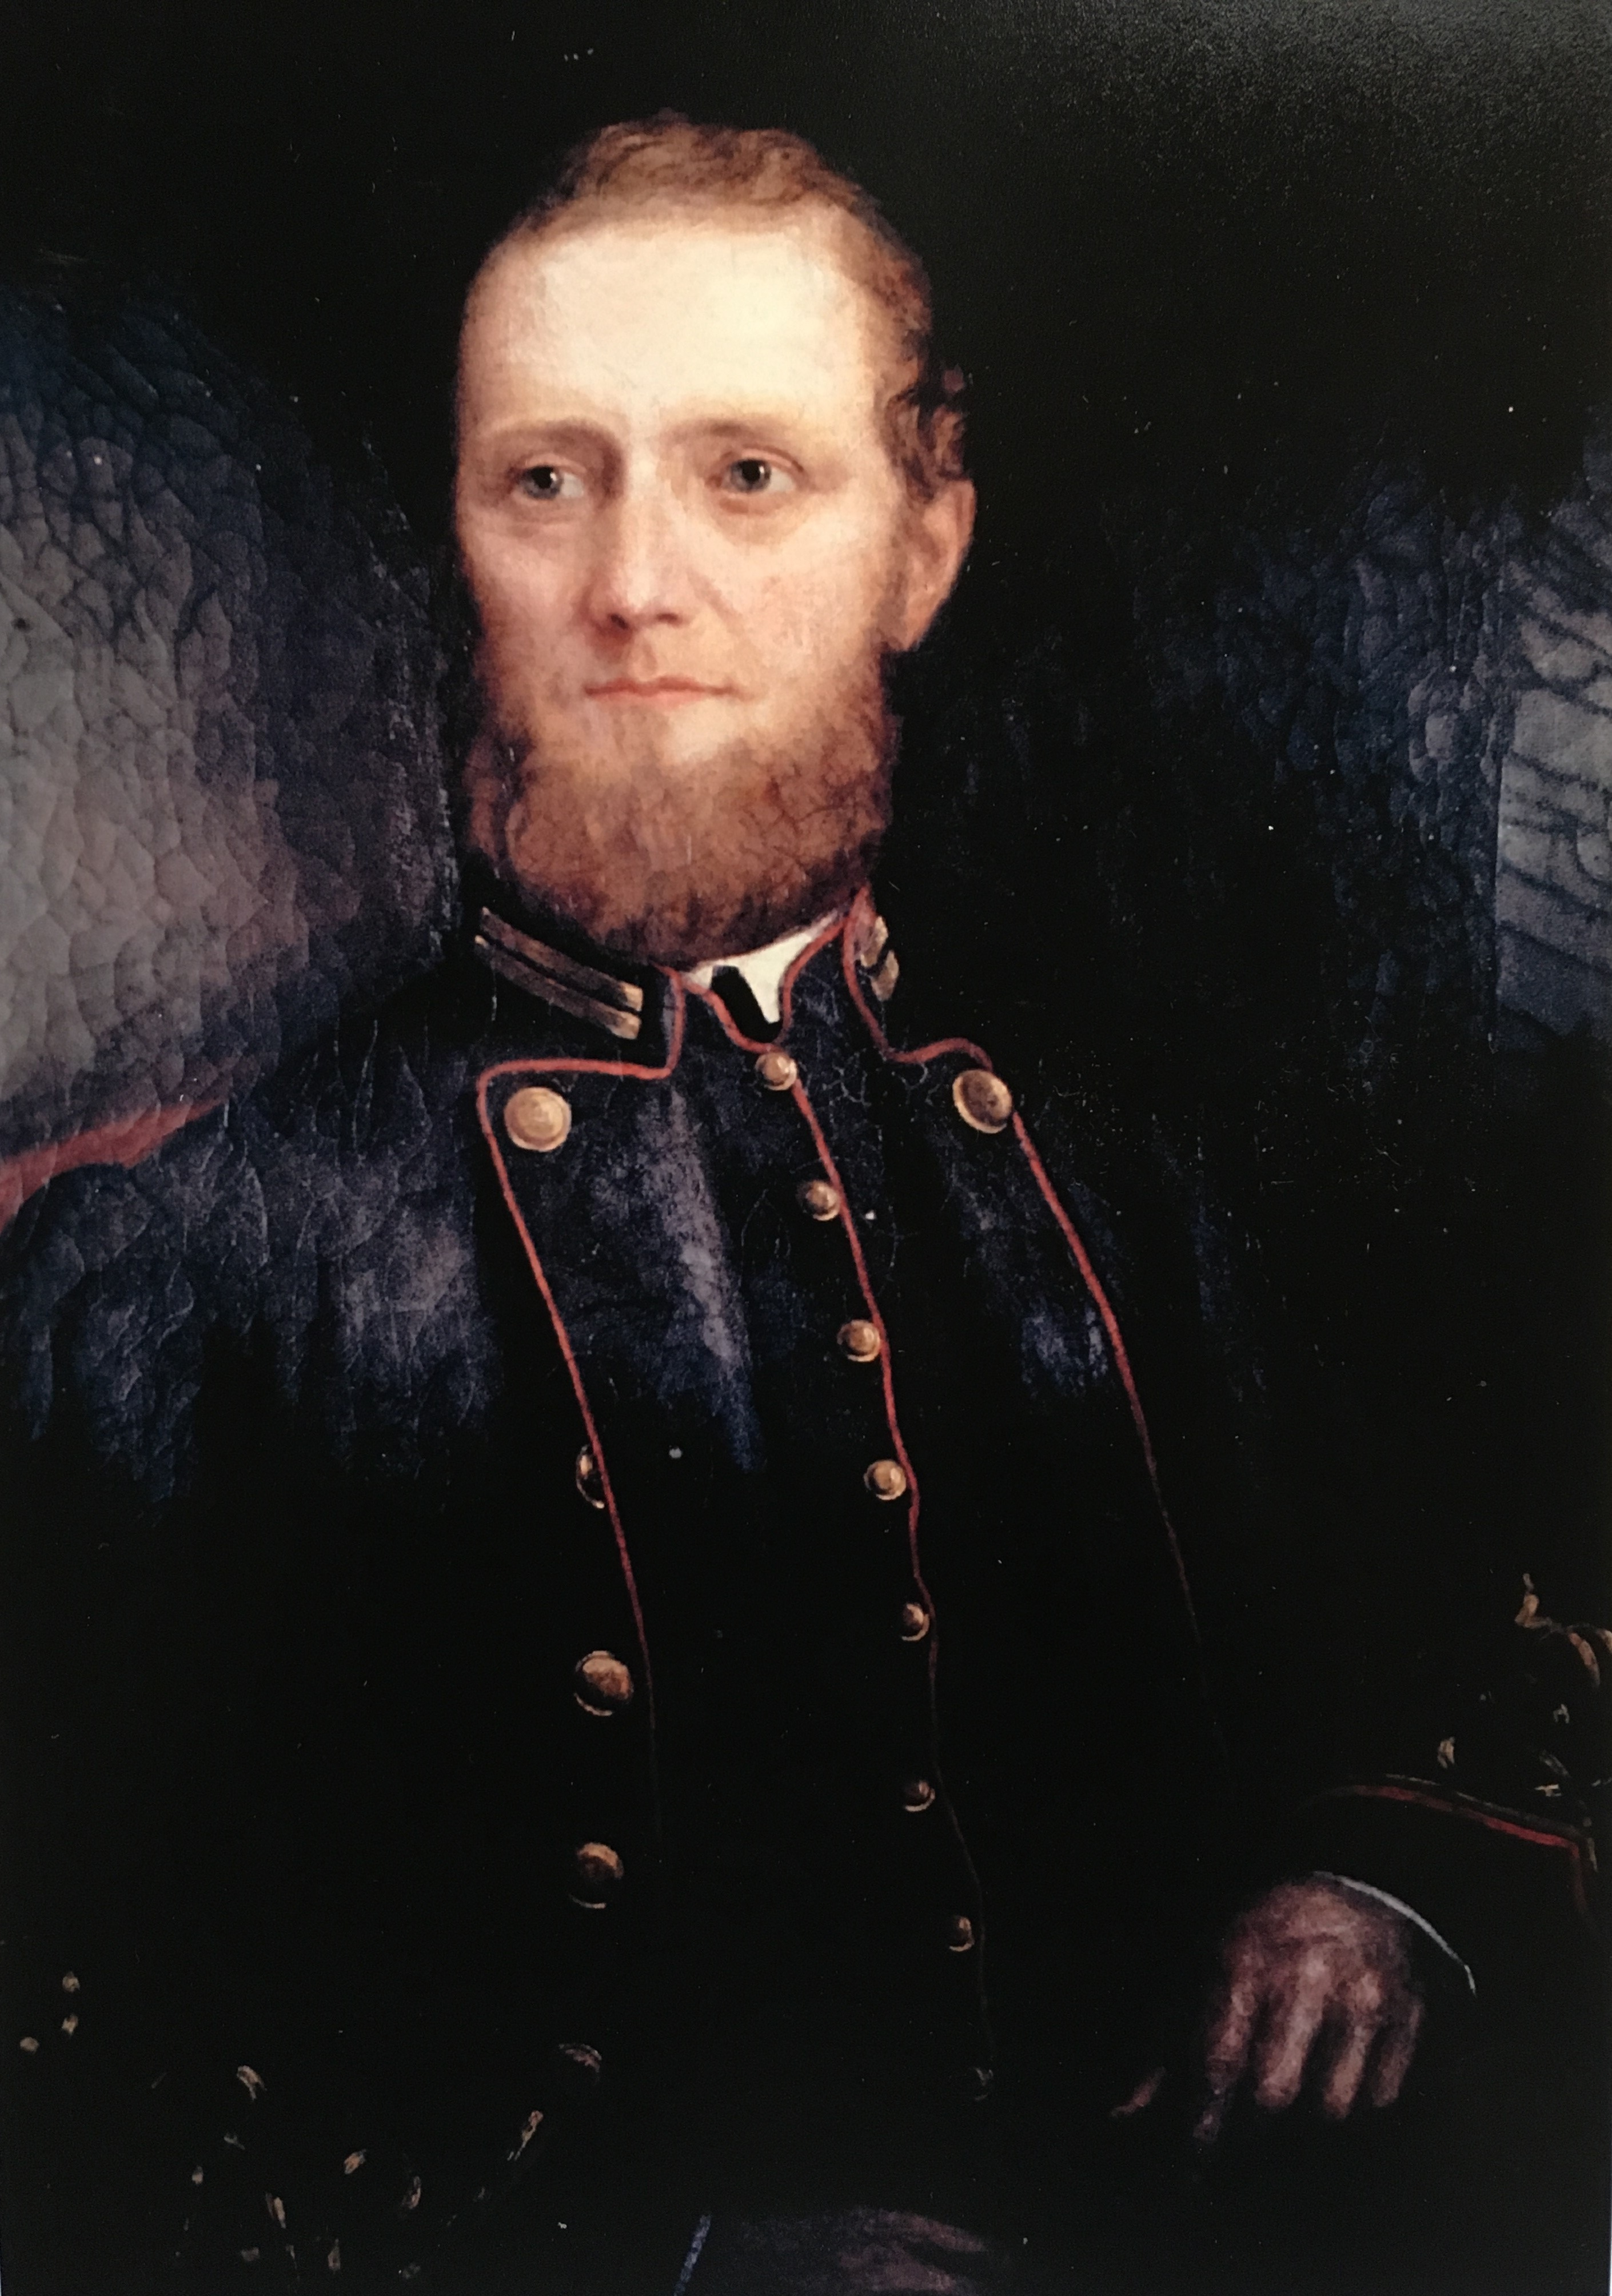 Portrait of a man with a beard wearing a confederate uniform.